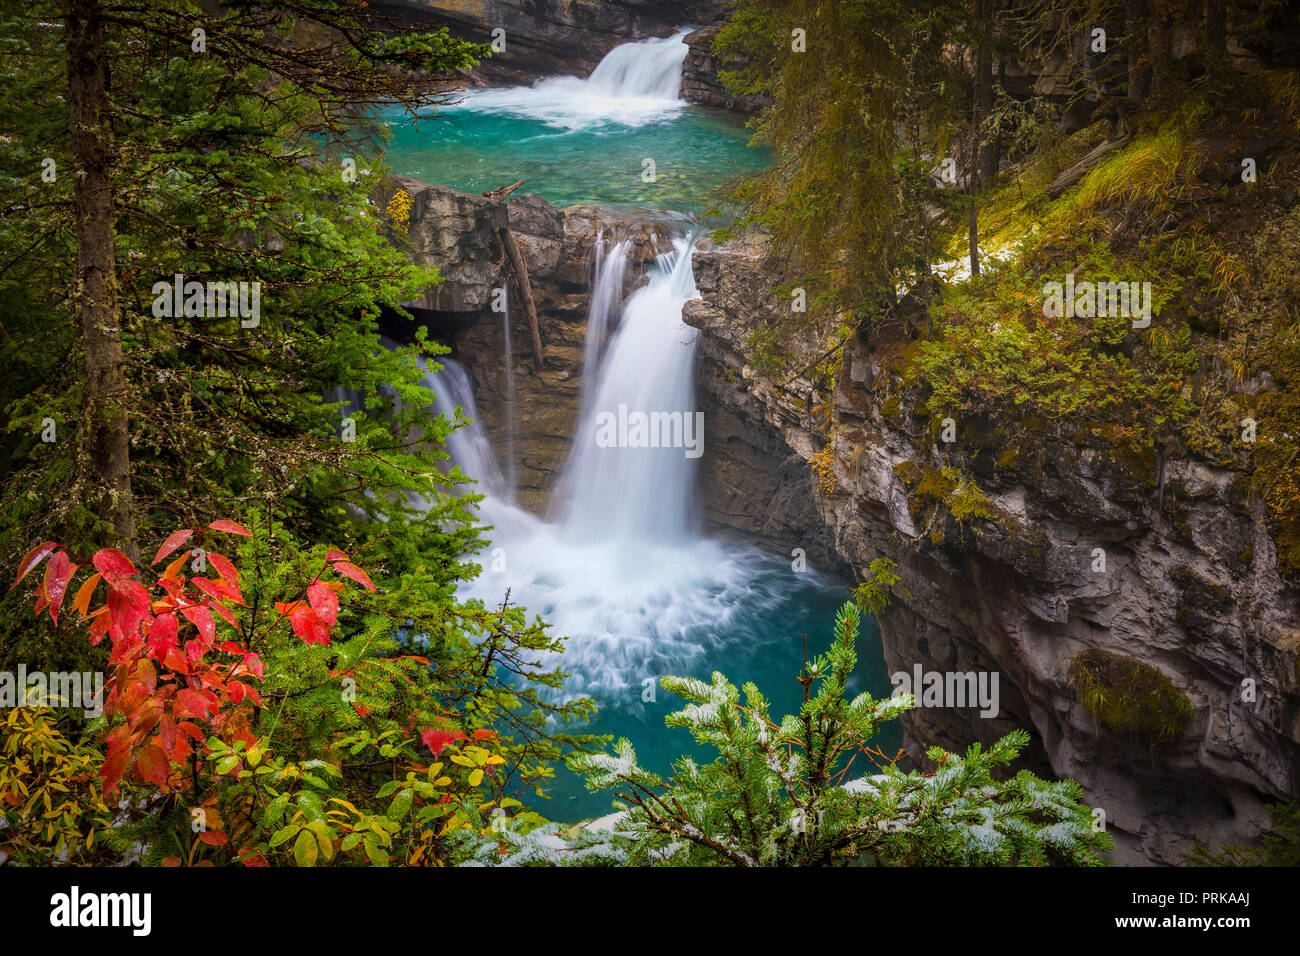 Johnston Creek is a tributary of the Bow River in Canada's Rocky Mountains. The creek is located in Banff National Park. - Stock Image